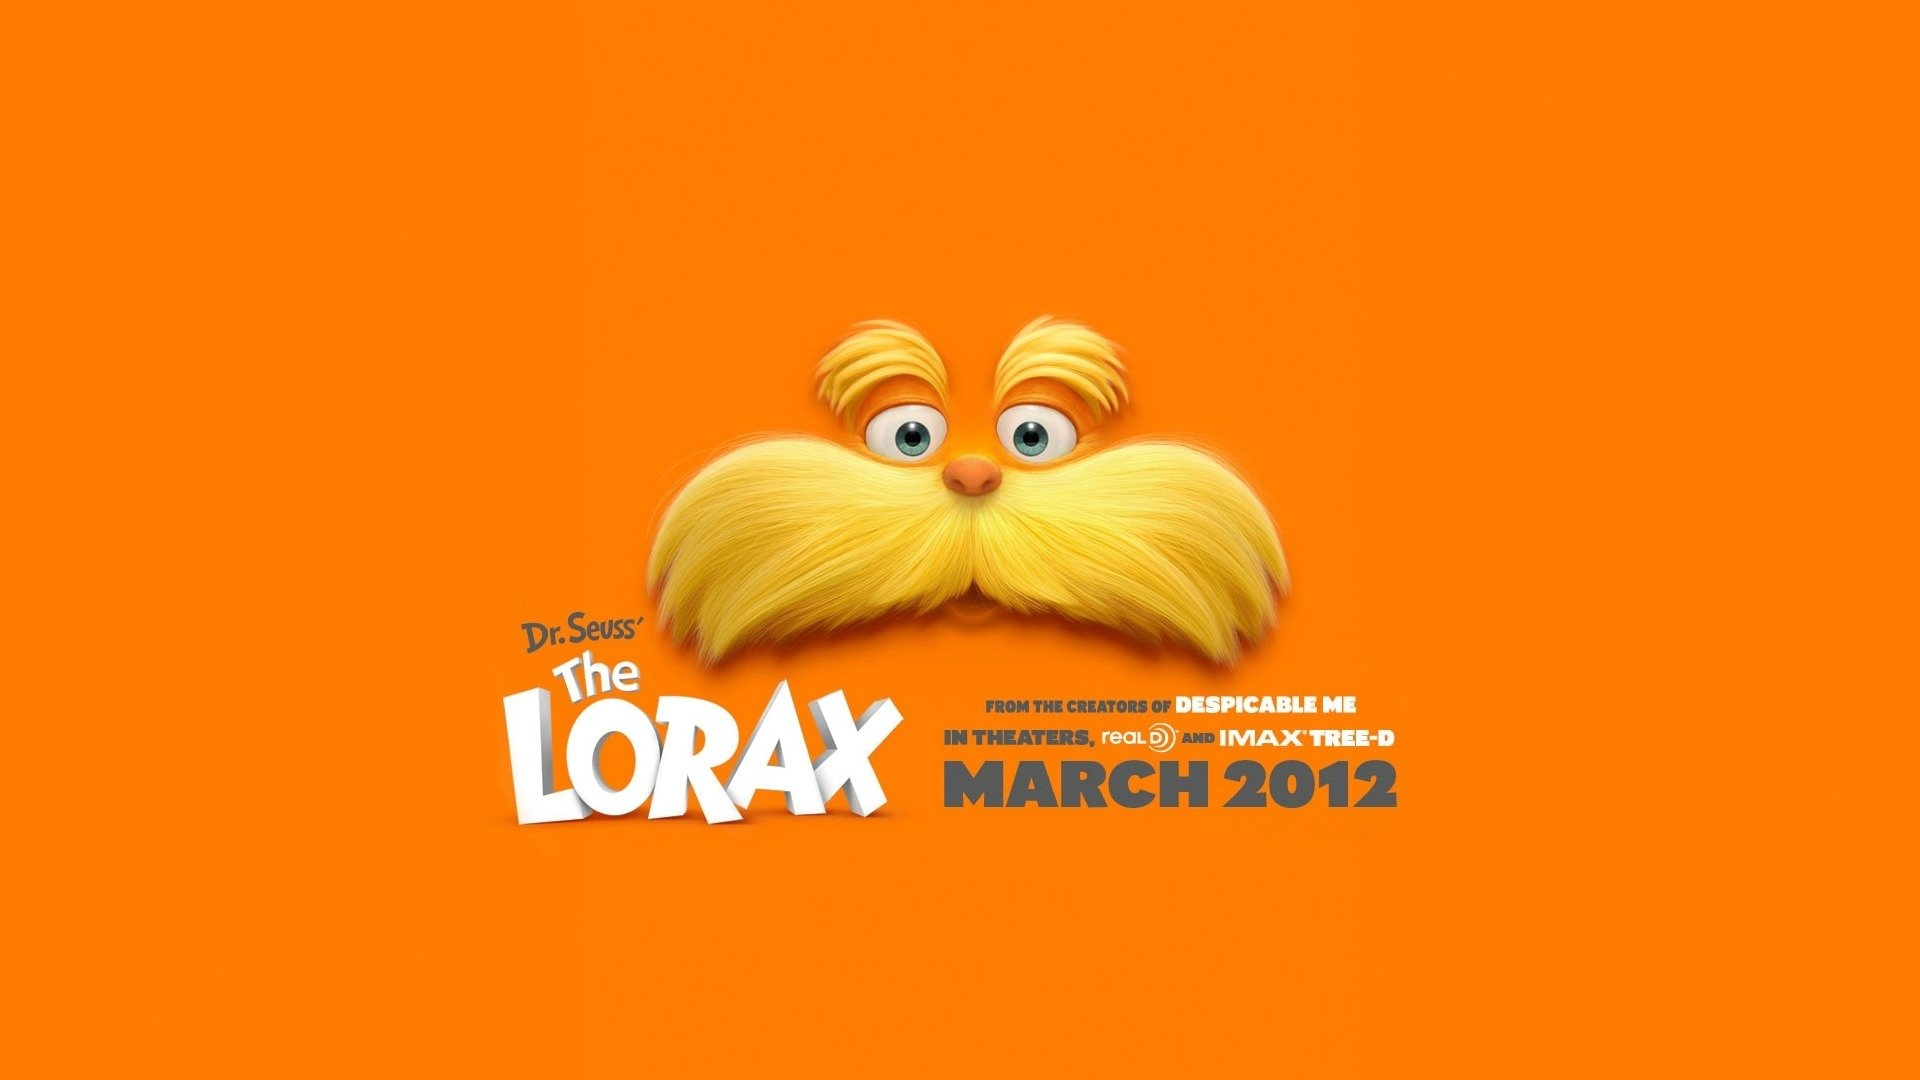 Dr Seuss The Lorax Wallpapers   1920x1080   182520 1920x1080